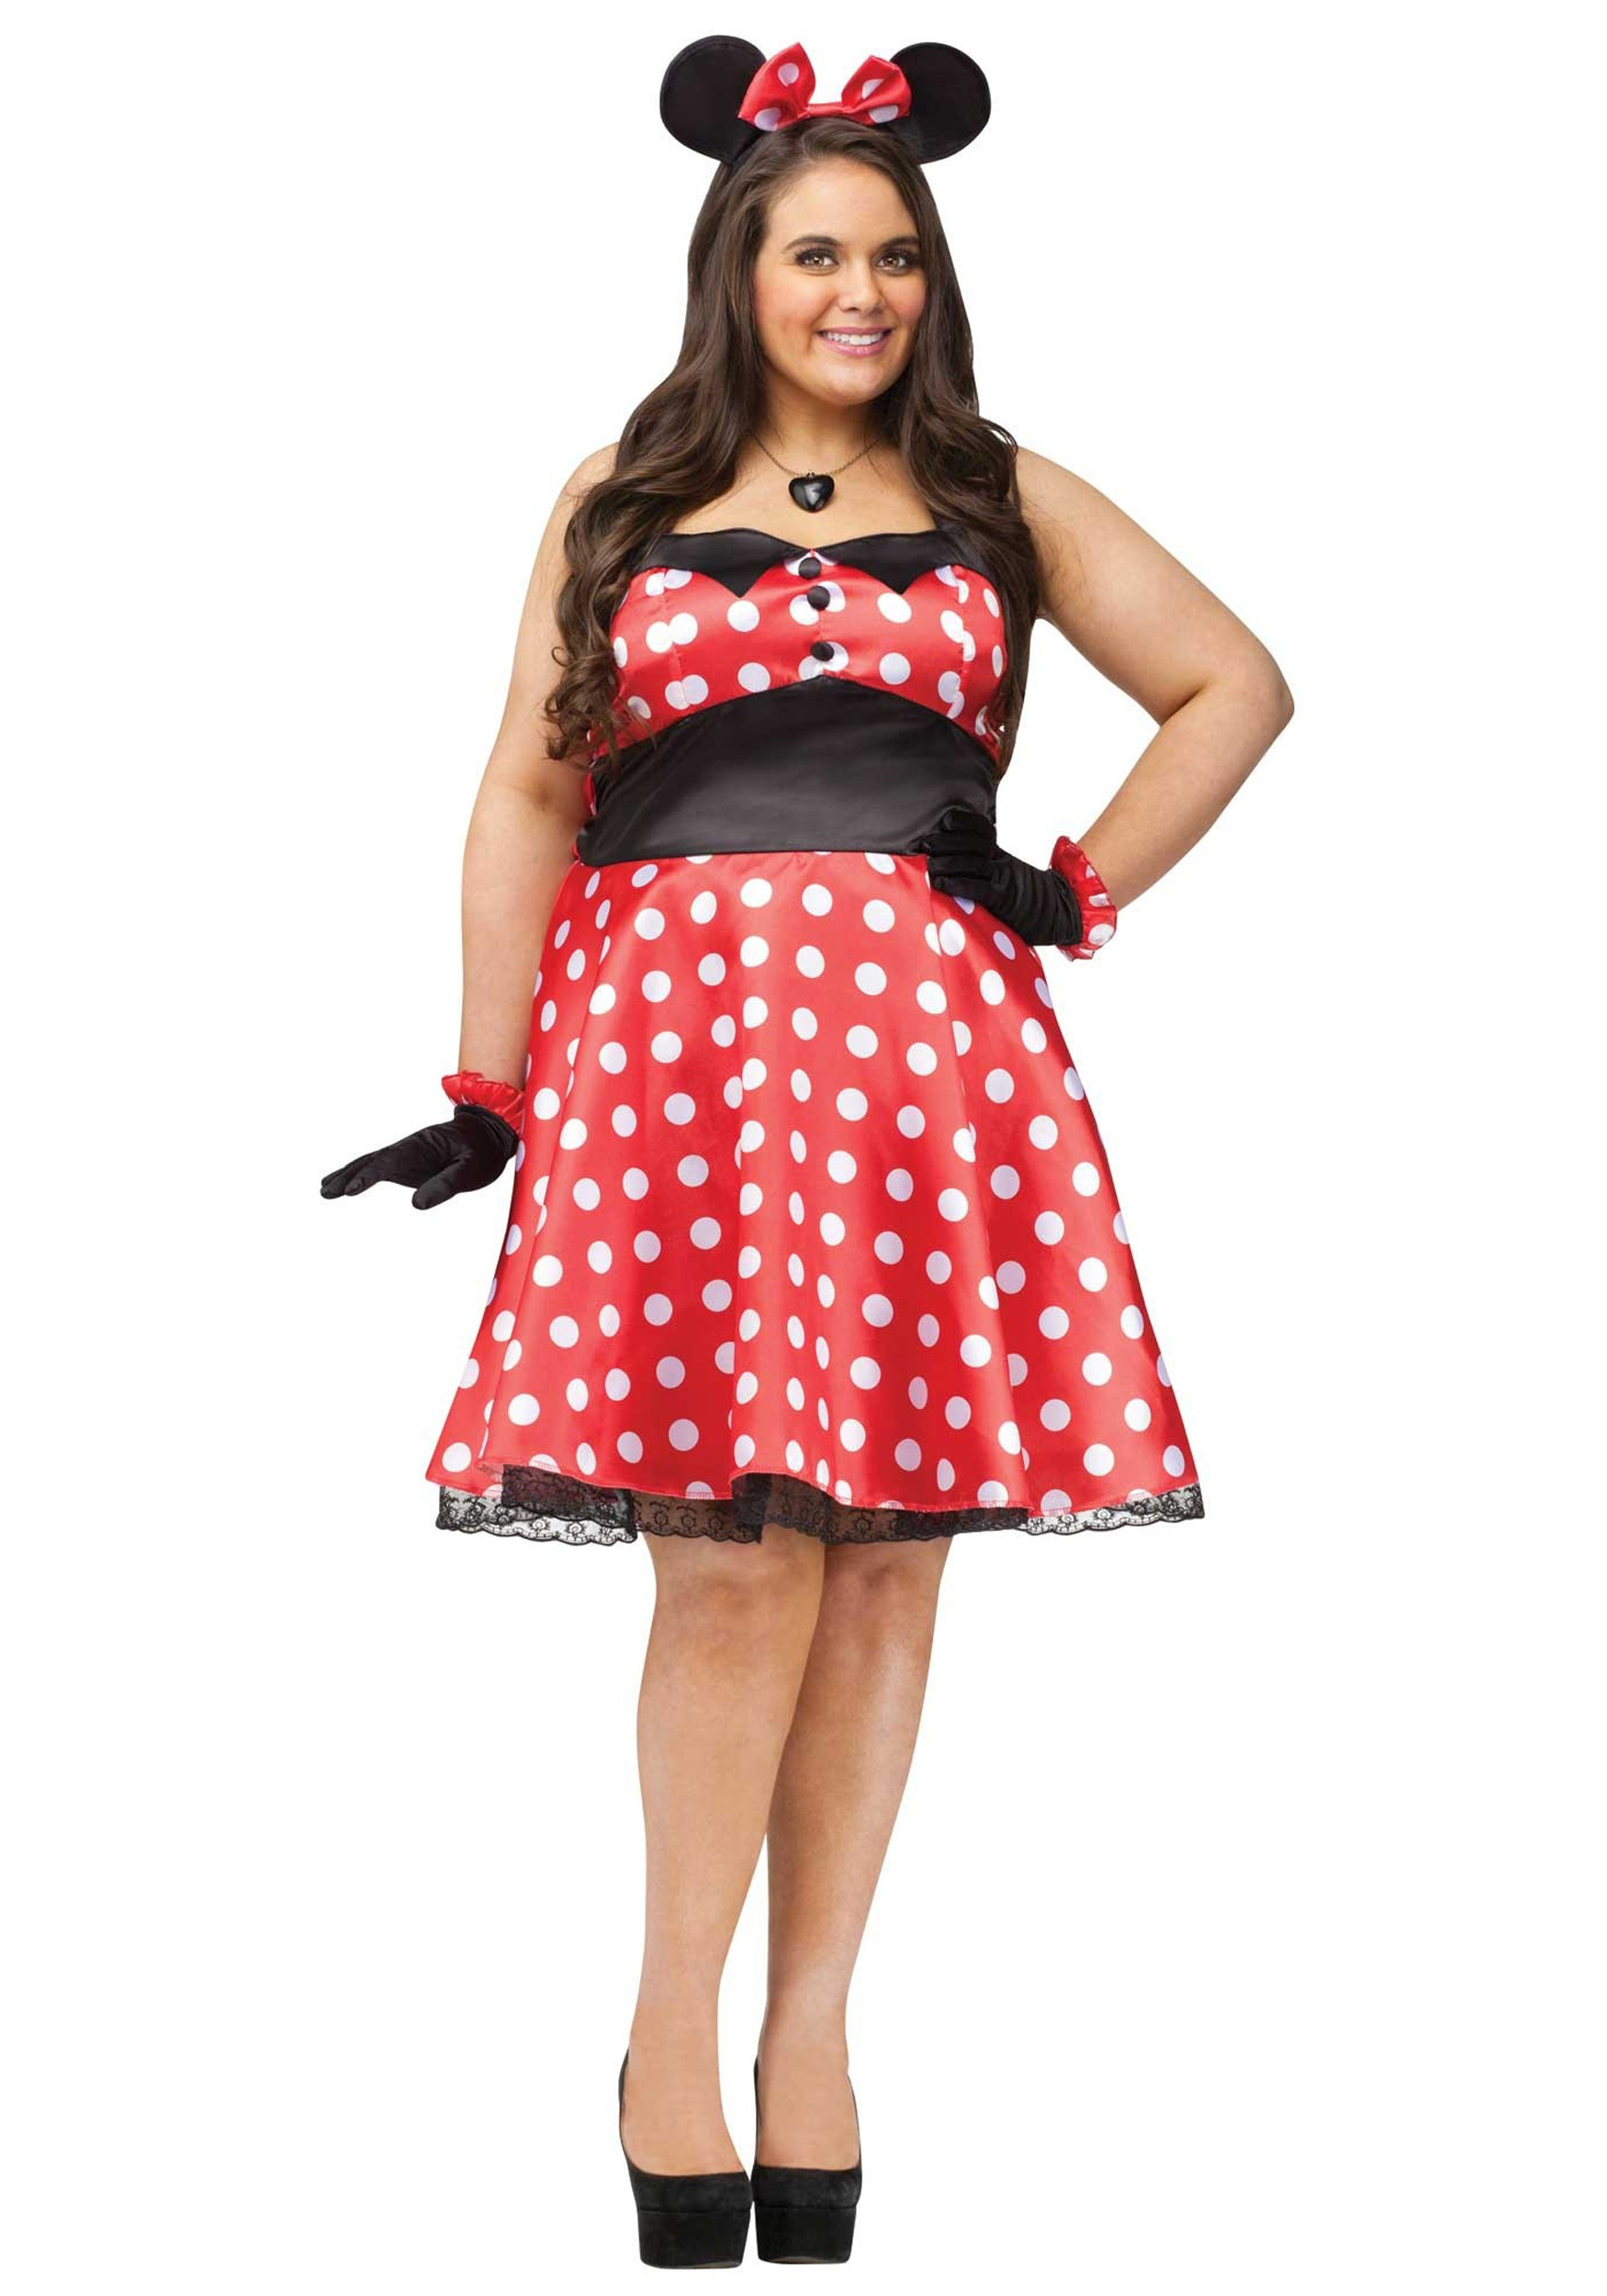 Adult Plus Size Costume